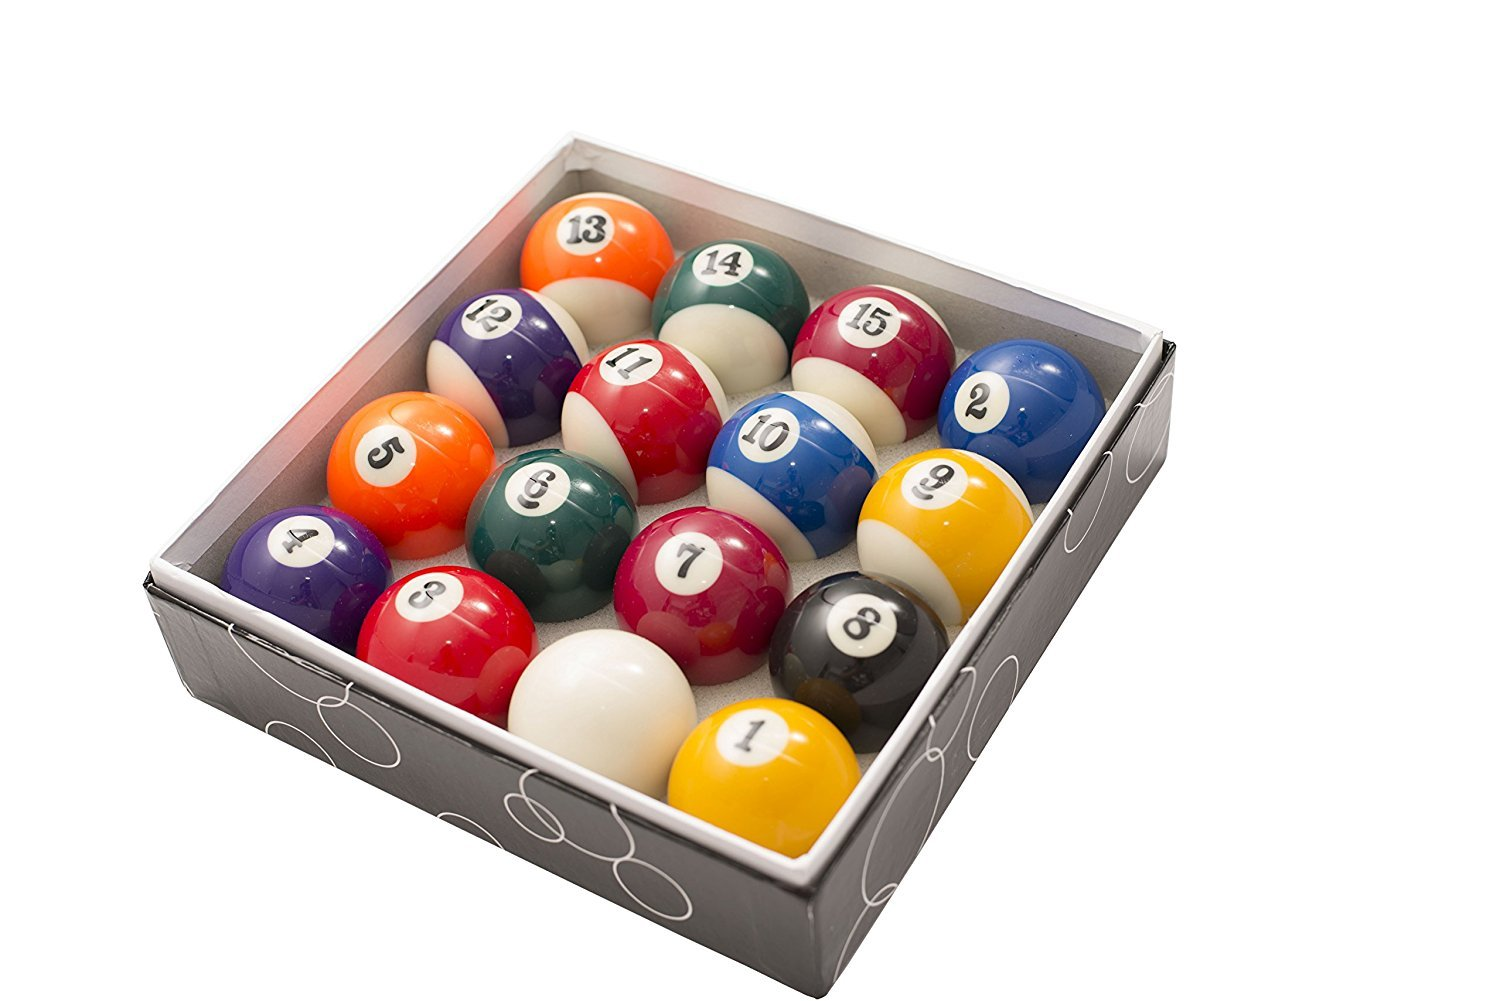 Mace 2-1/4 Inch Pool ball set Deluxe Billiards Set Regulation Size 16 Balls Complete Set with Tray